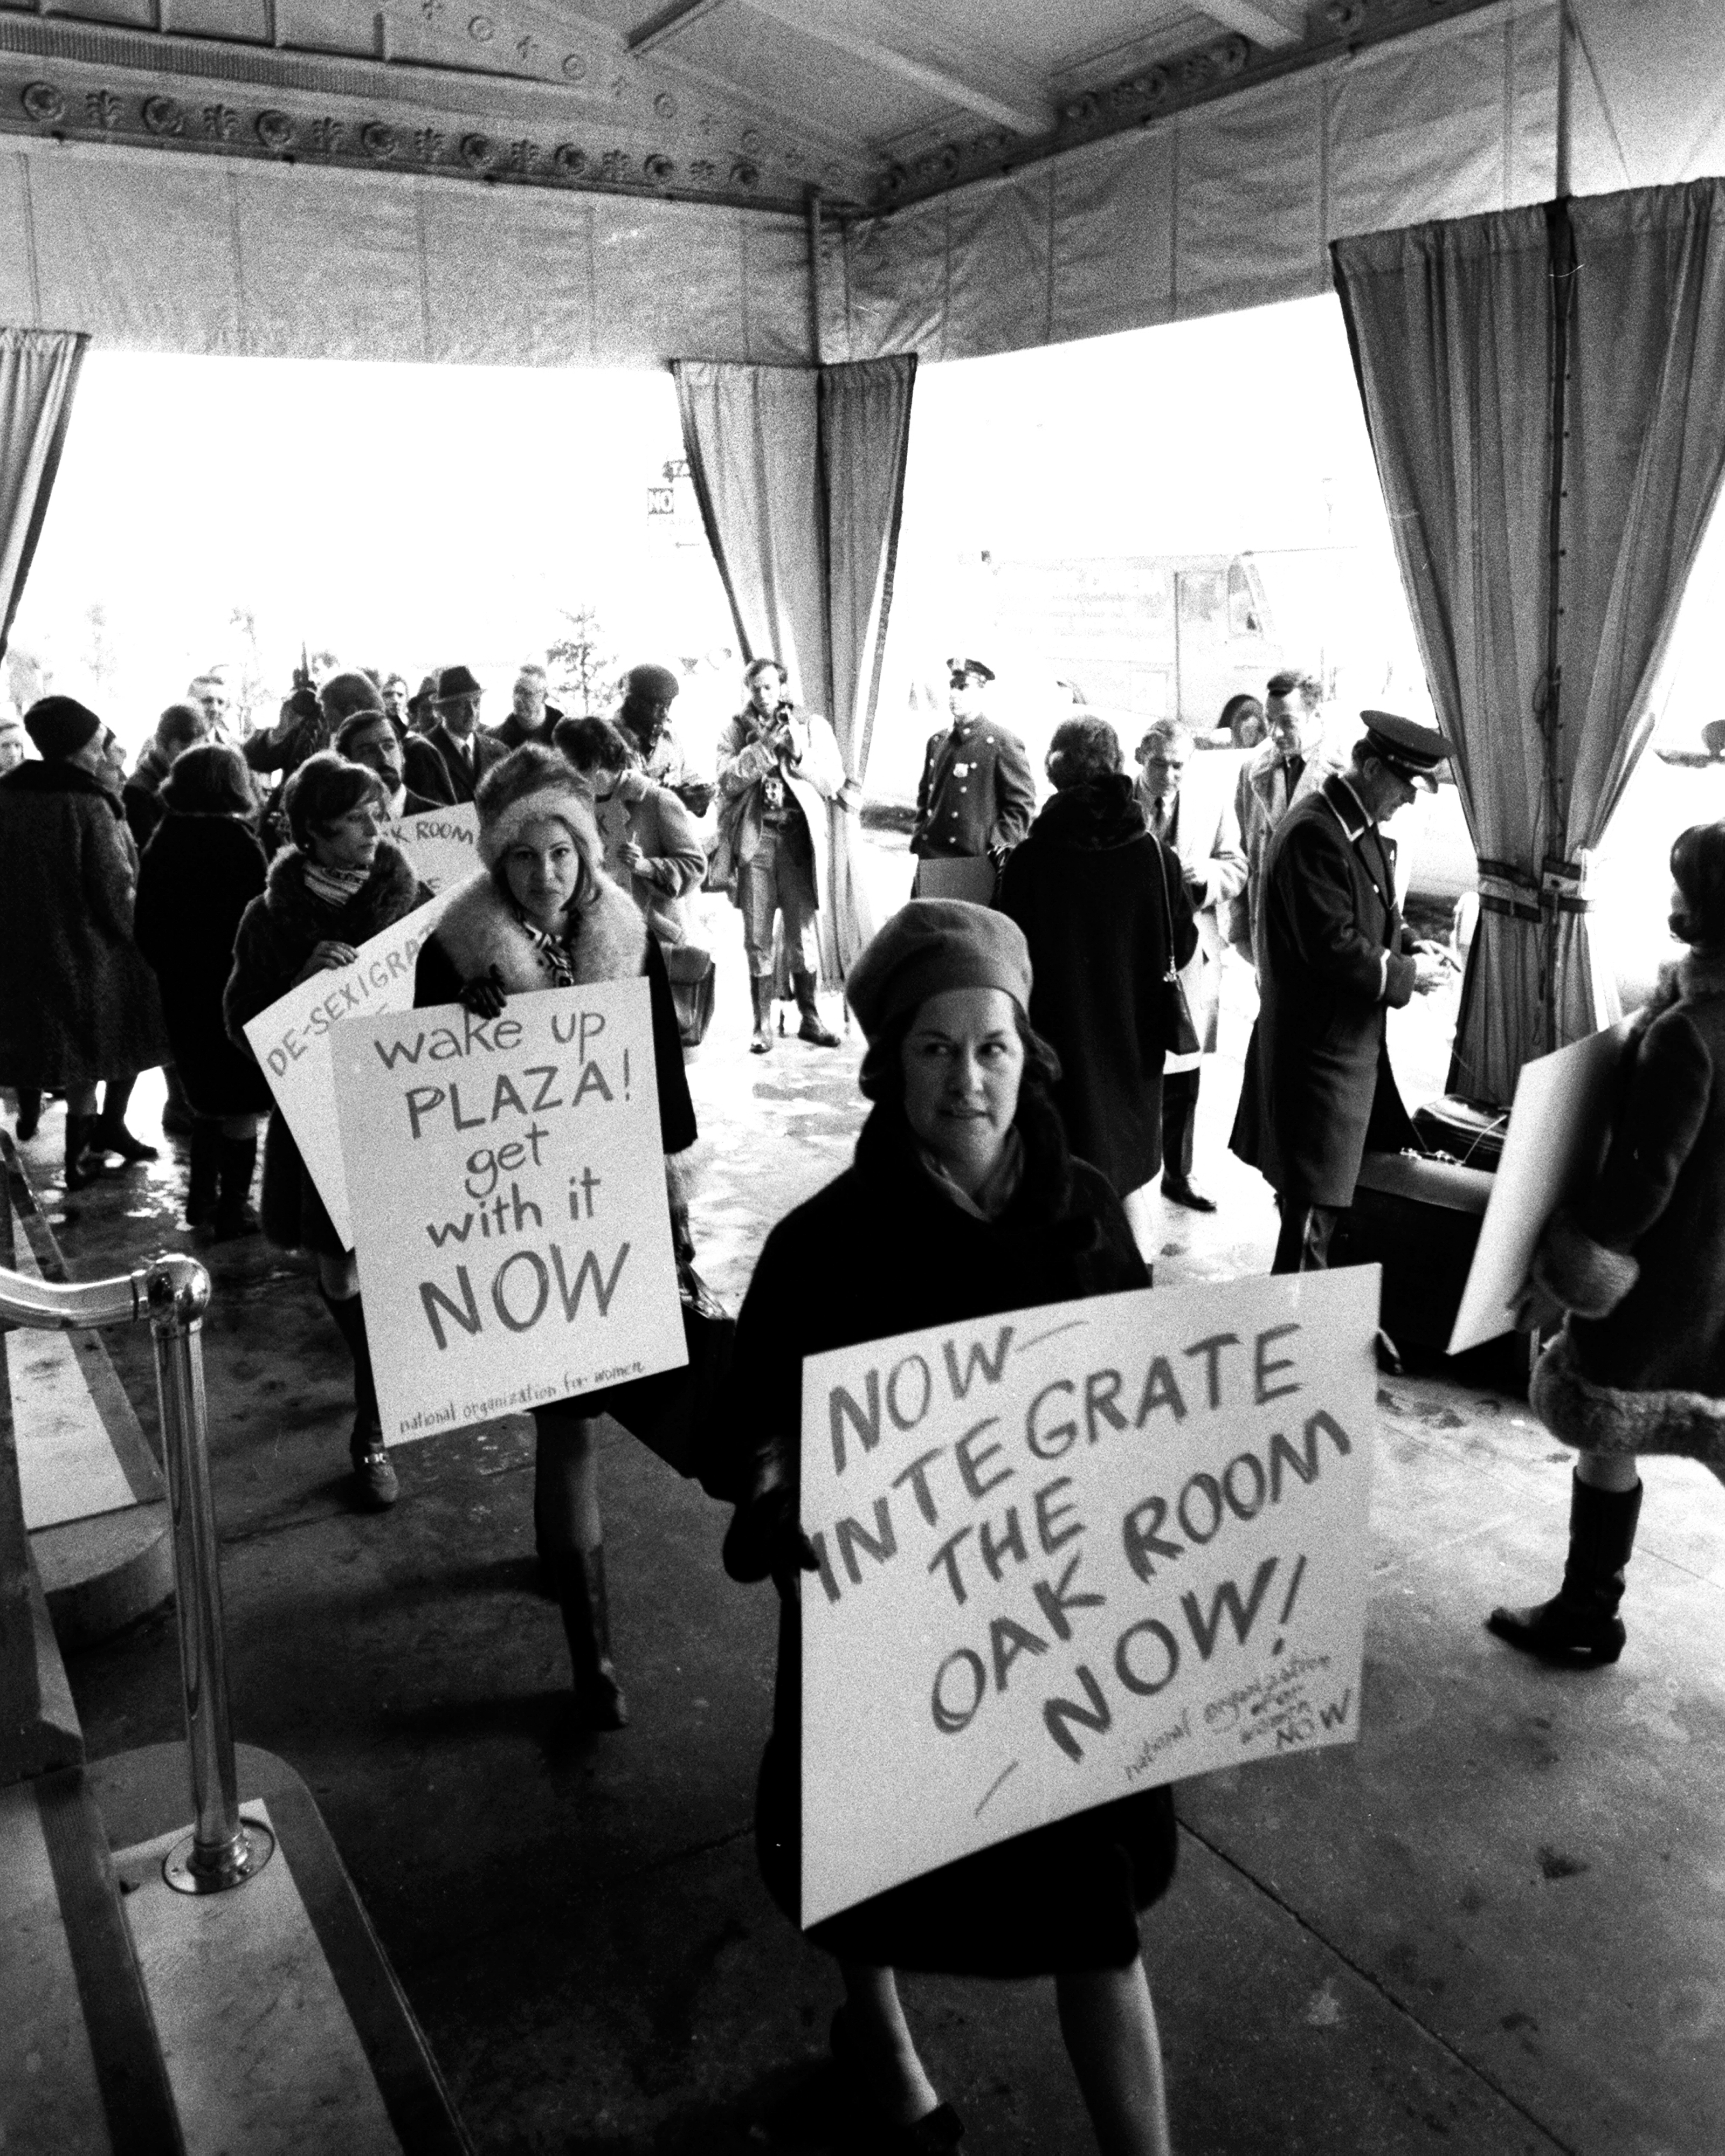 The National Organization for Women, upset by the  men only  policy of the Hotel Plaza, demonstrate outside.